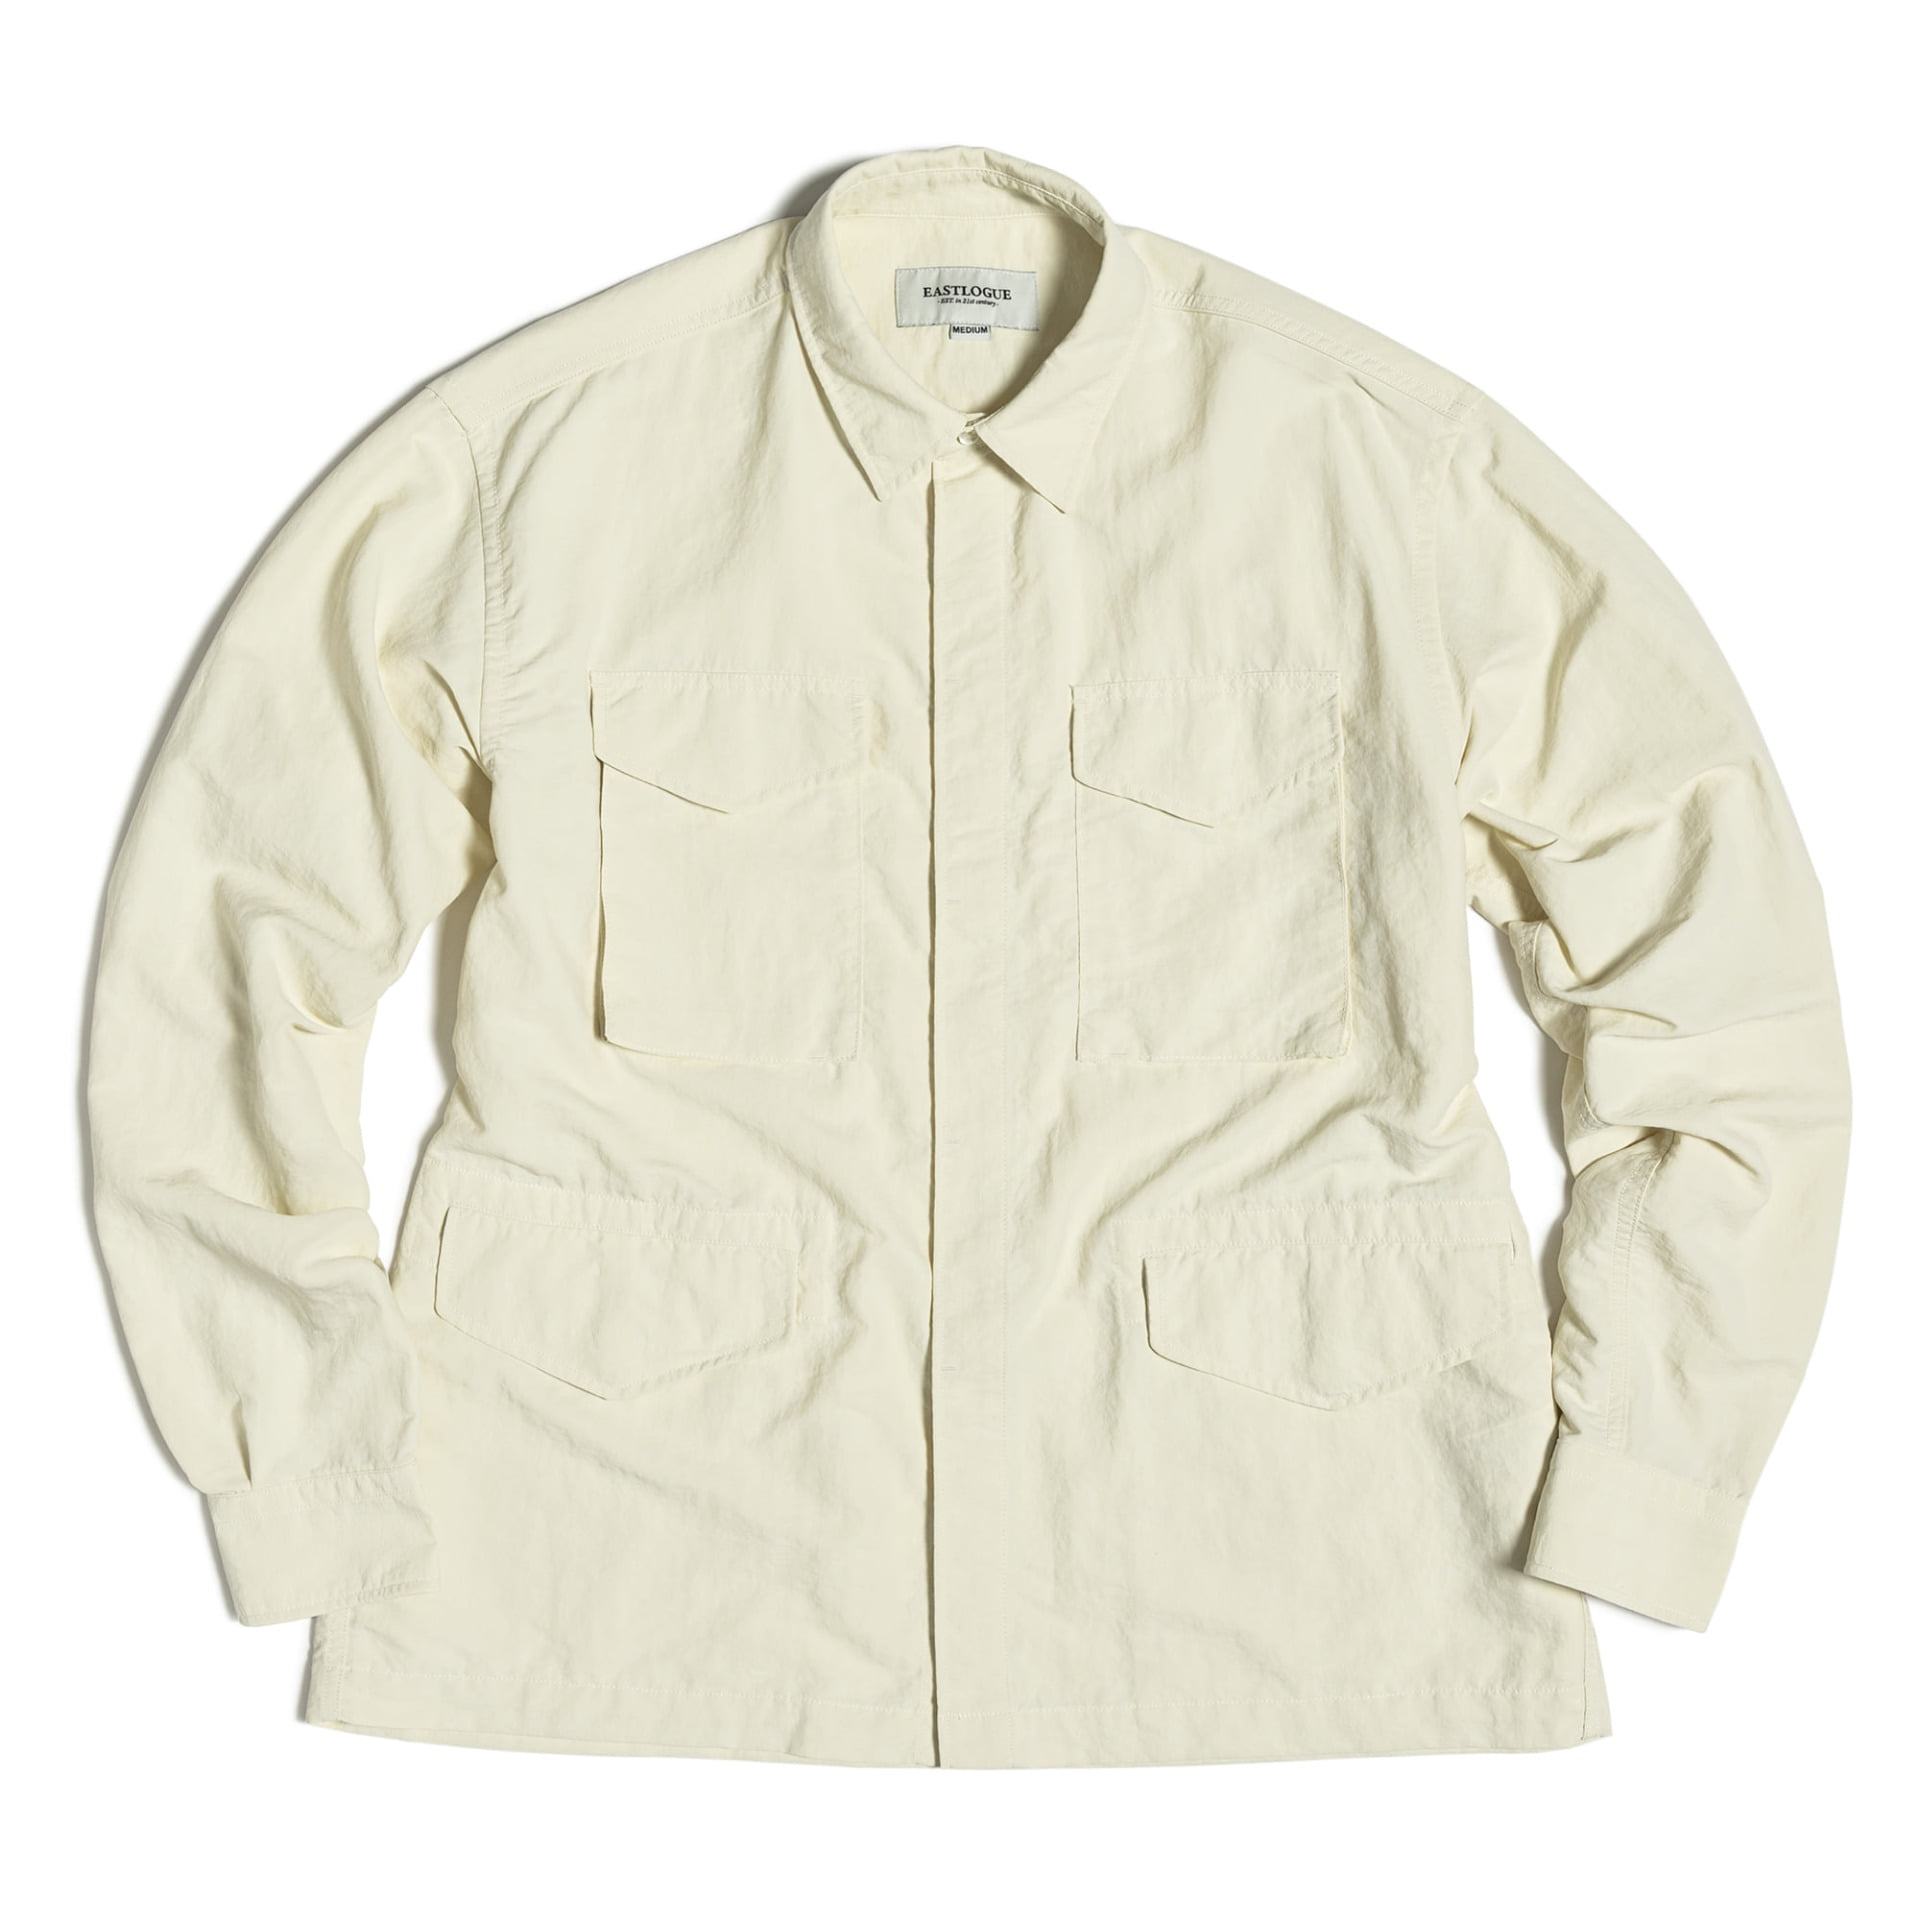 M65 SHIRT JACKET (Off White Nylon Washer)